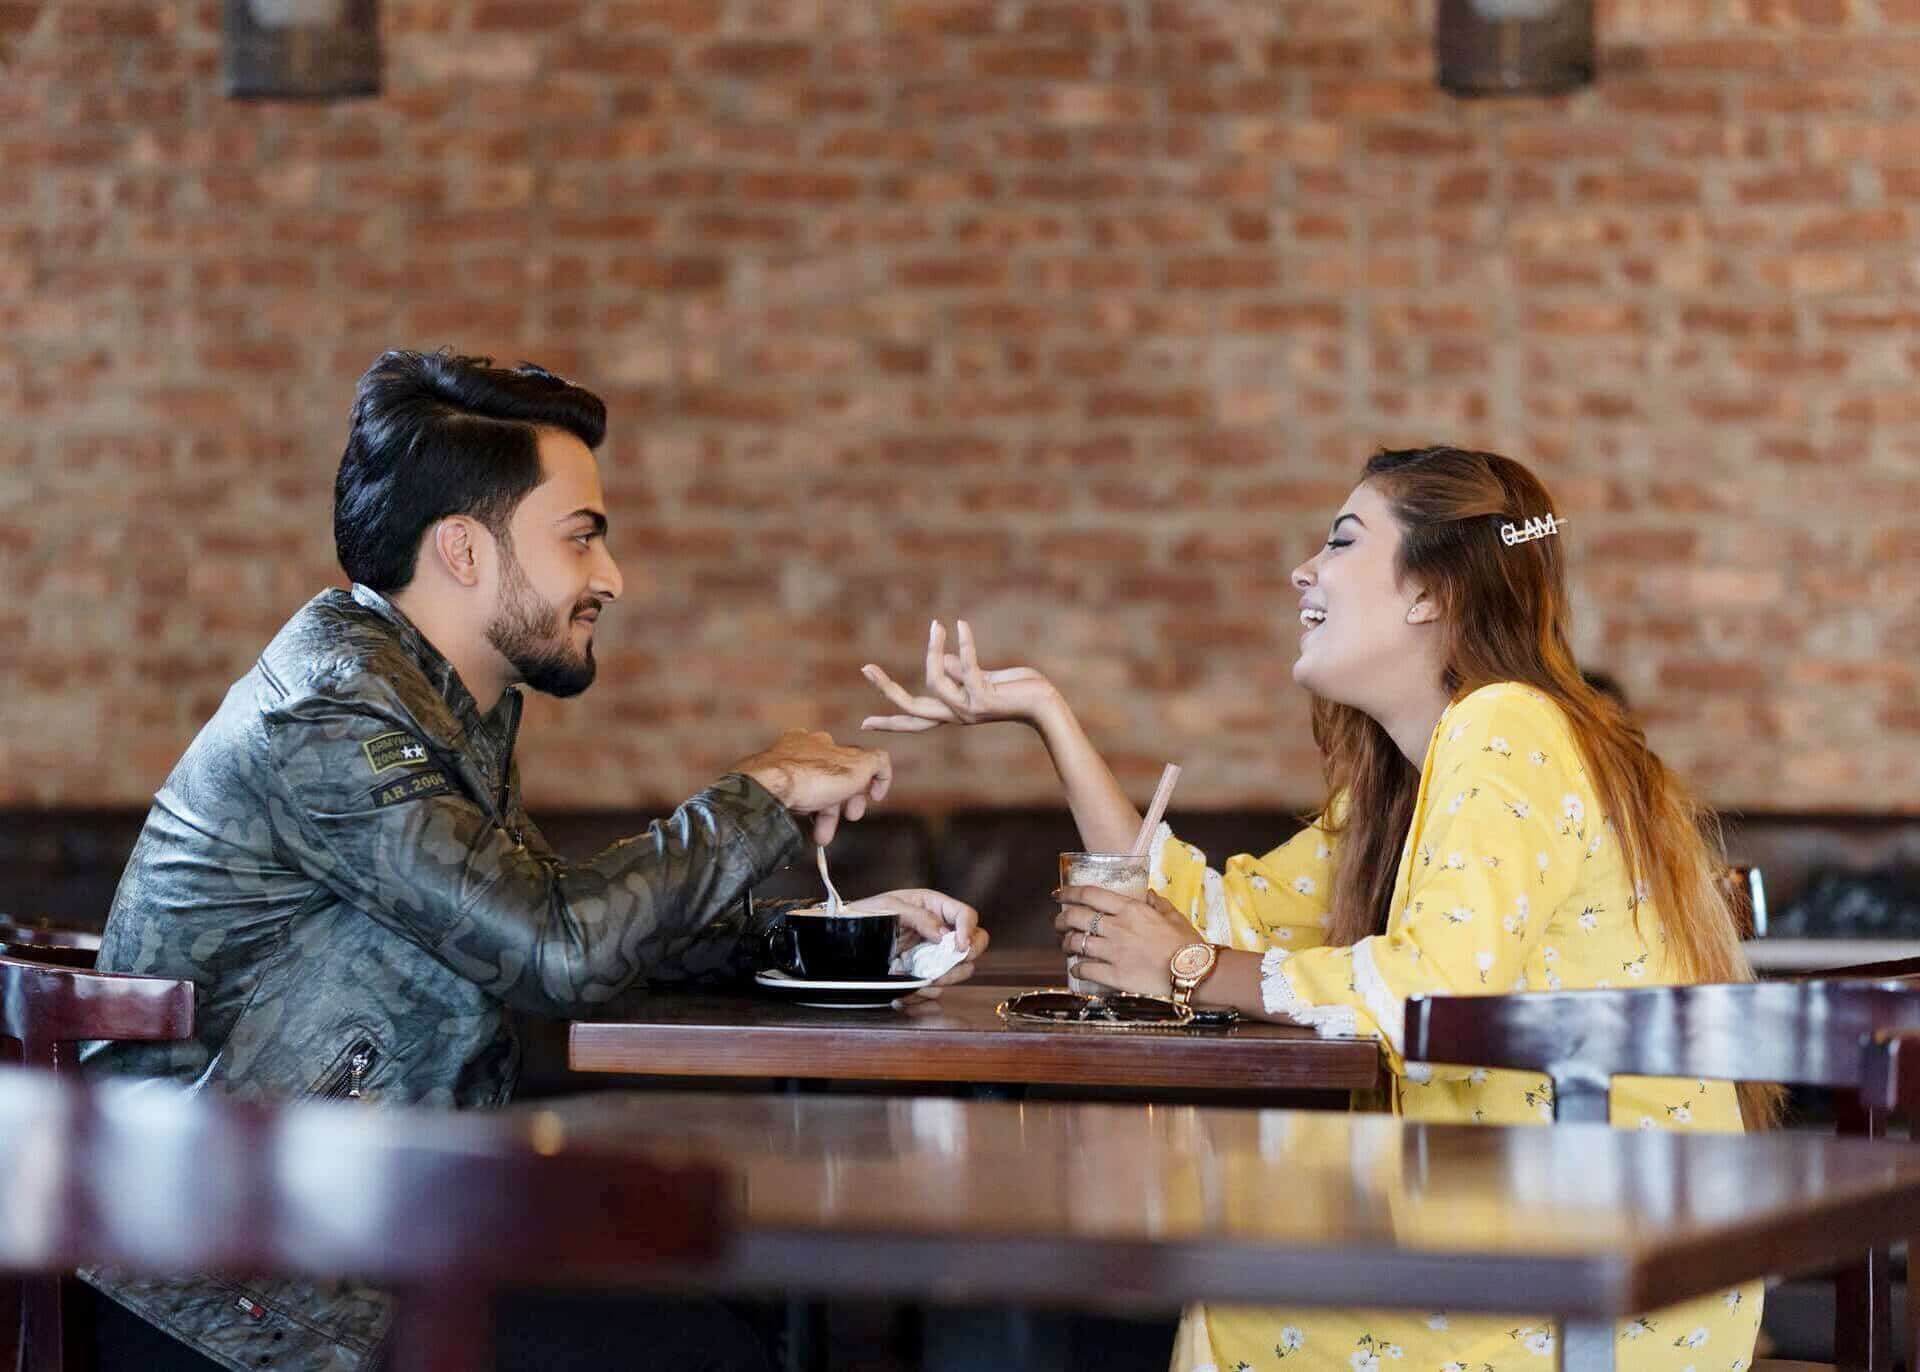 man and woman chatting in a cafe